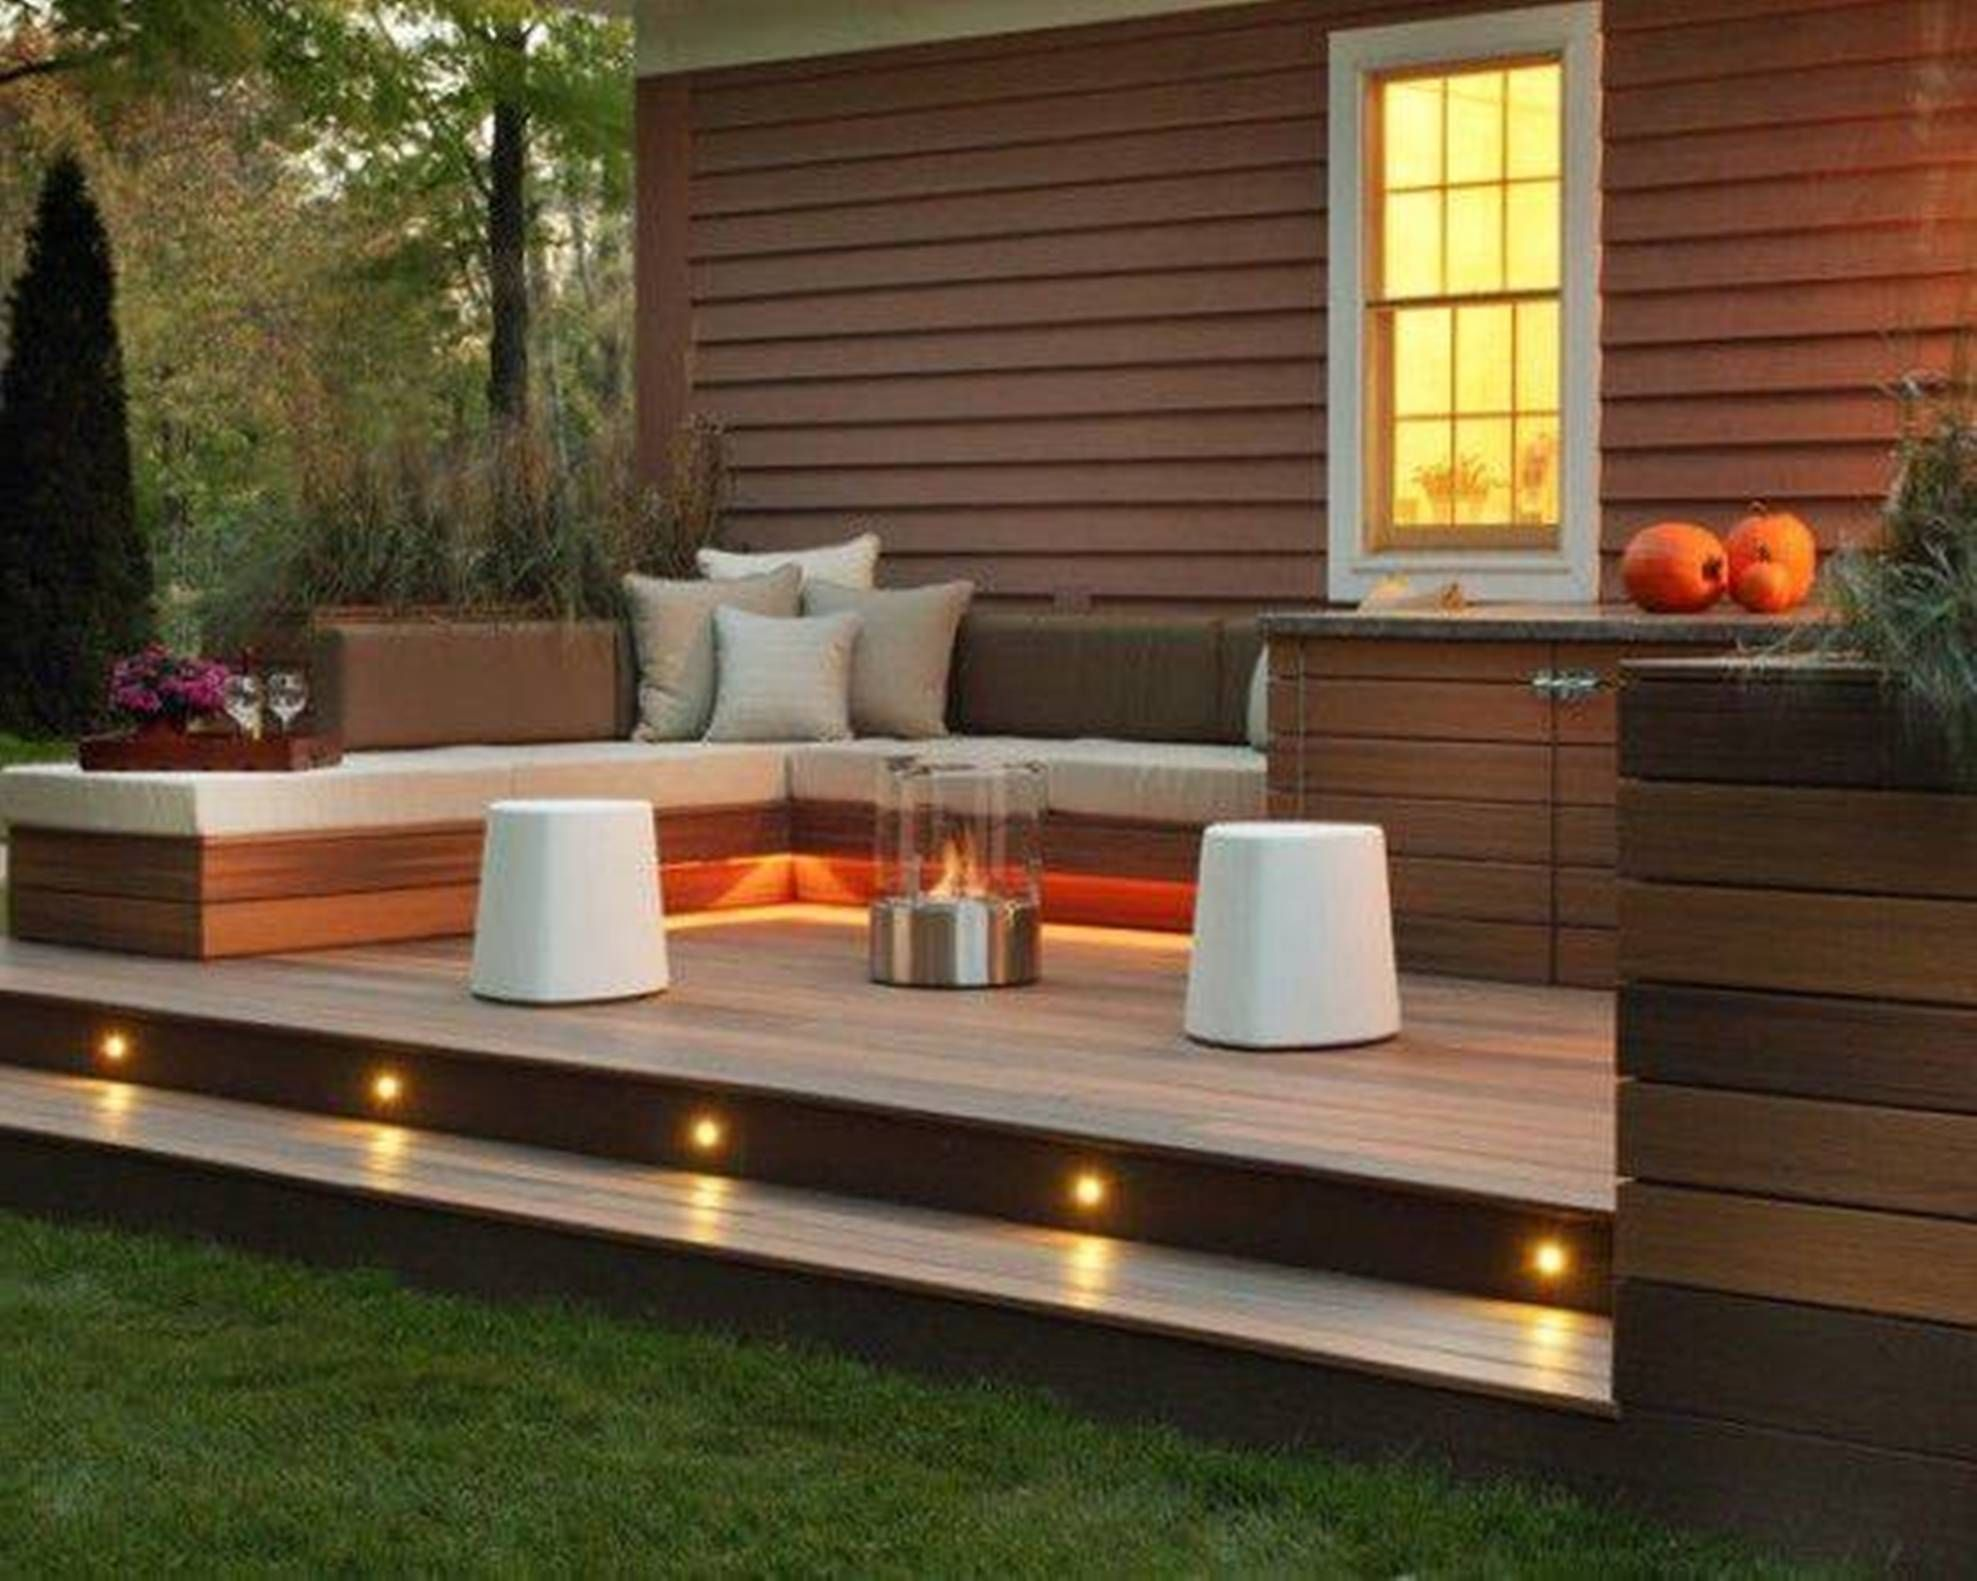 Deck Design Ideas 26 floating deck design ideas Landscaping And Outdoor Building Great Small Backyard Deck Designs Small Backyard Deck Designs With